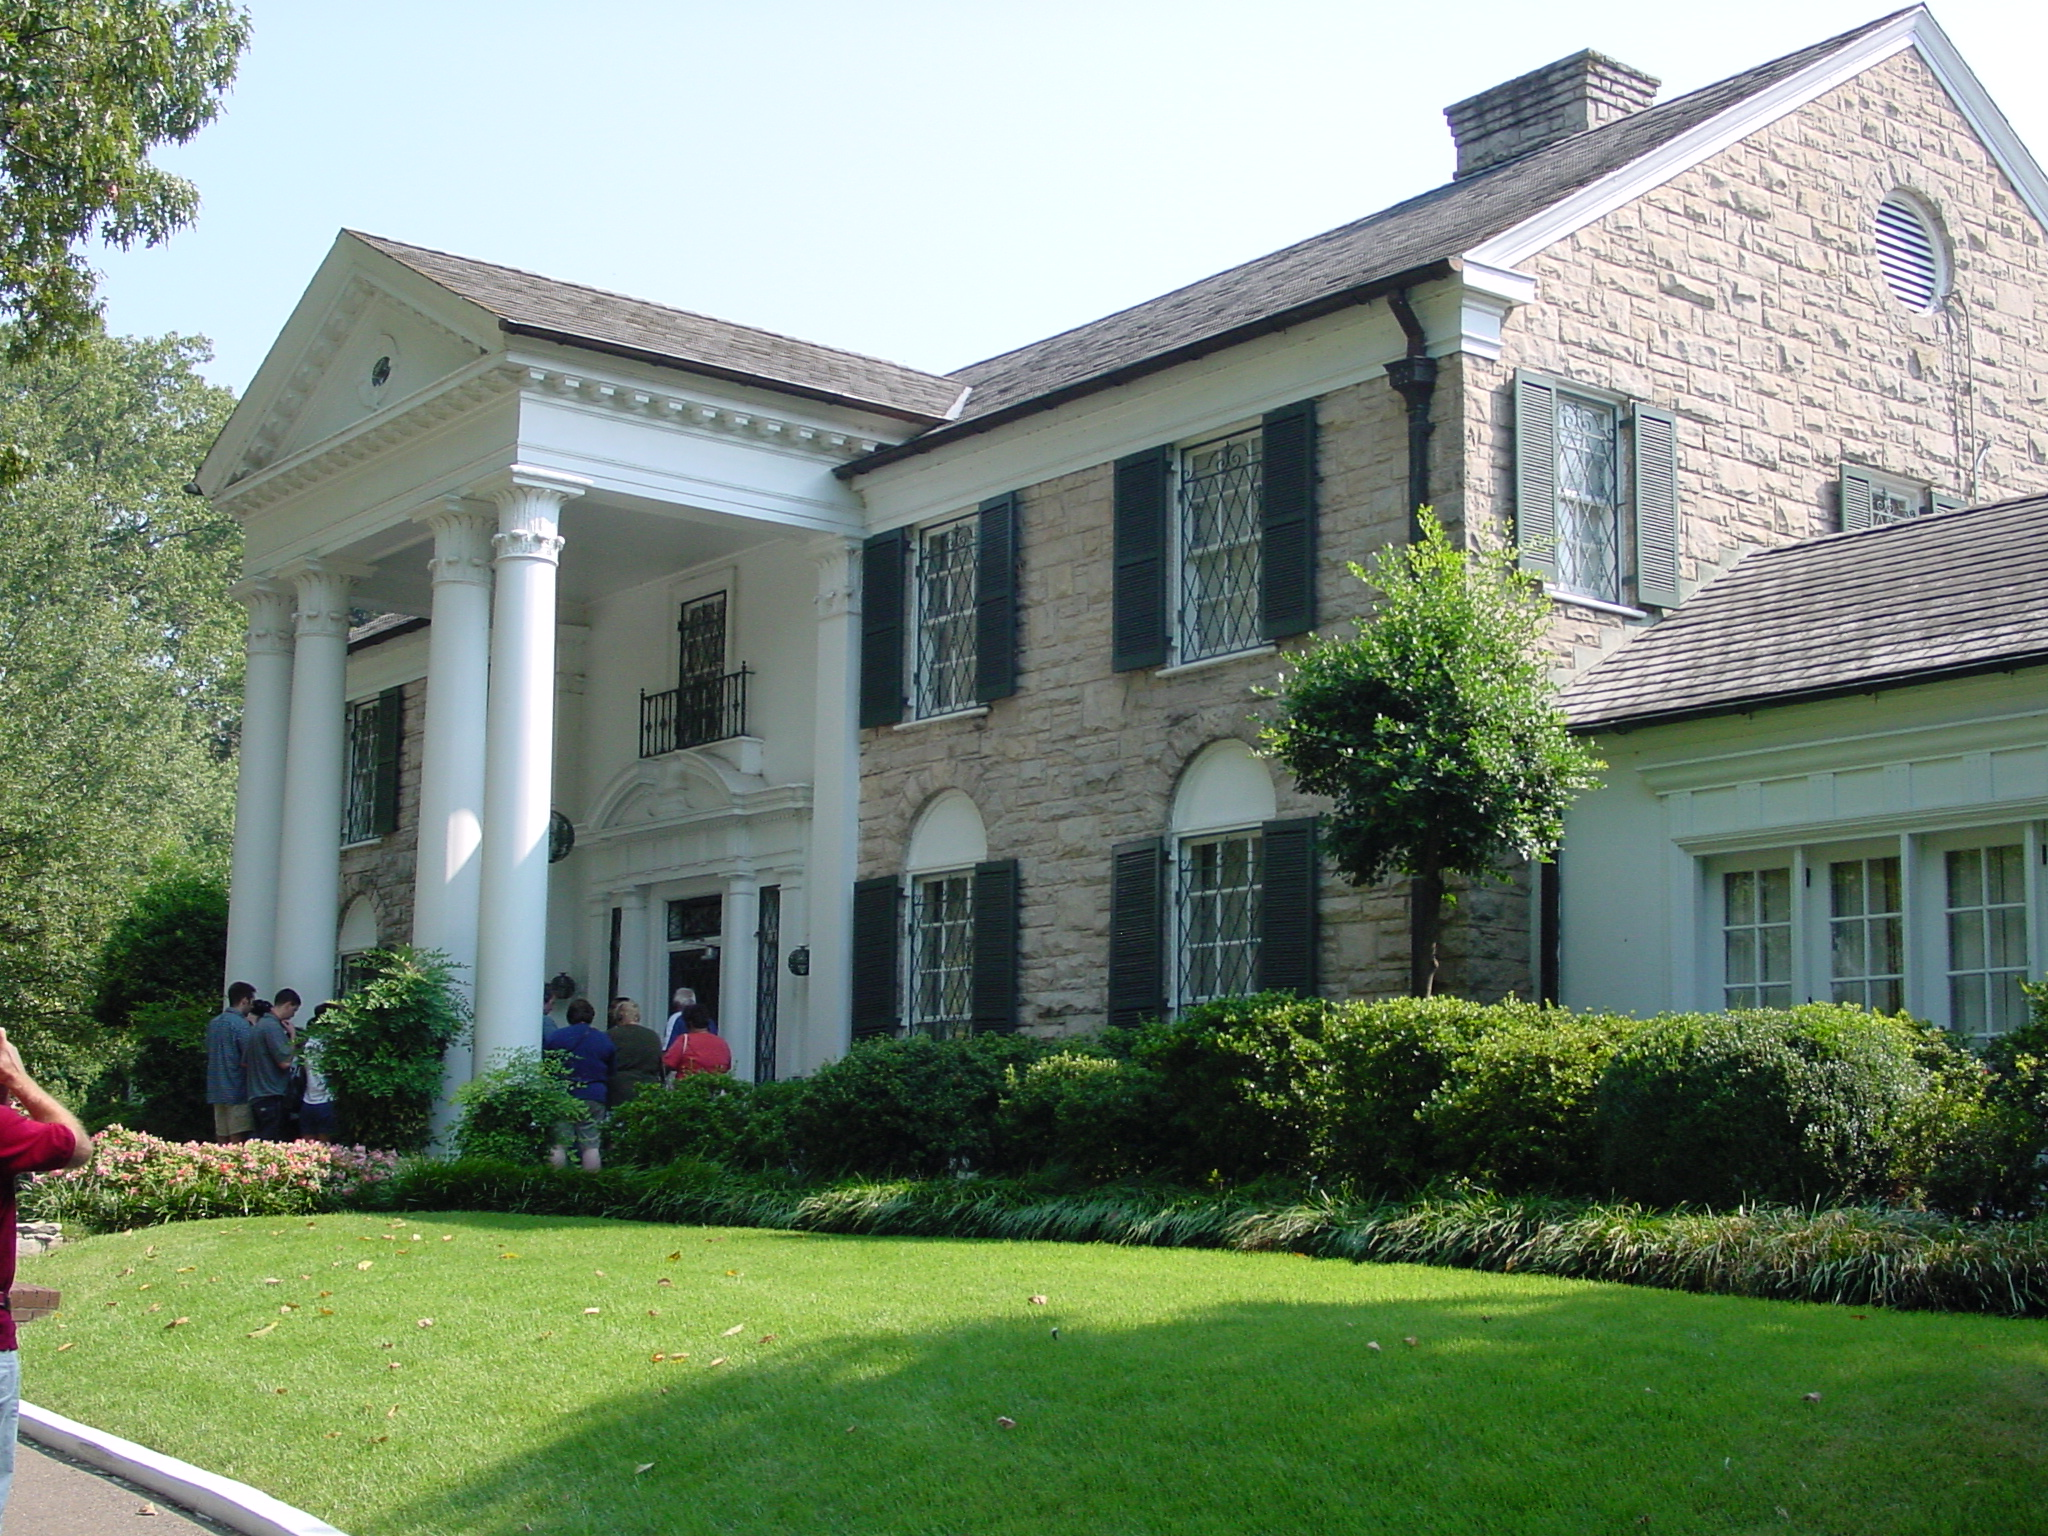 A Tour or Two… Maybe Half a Dozen Tours of Graceland